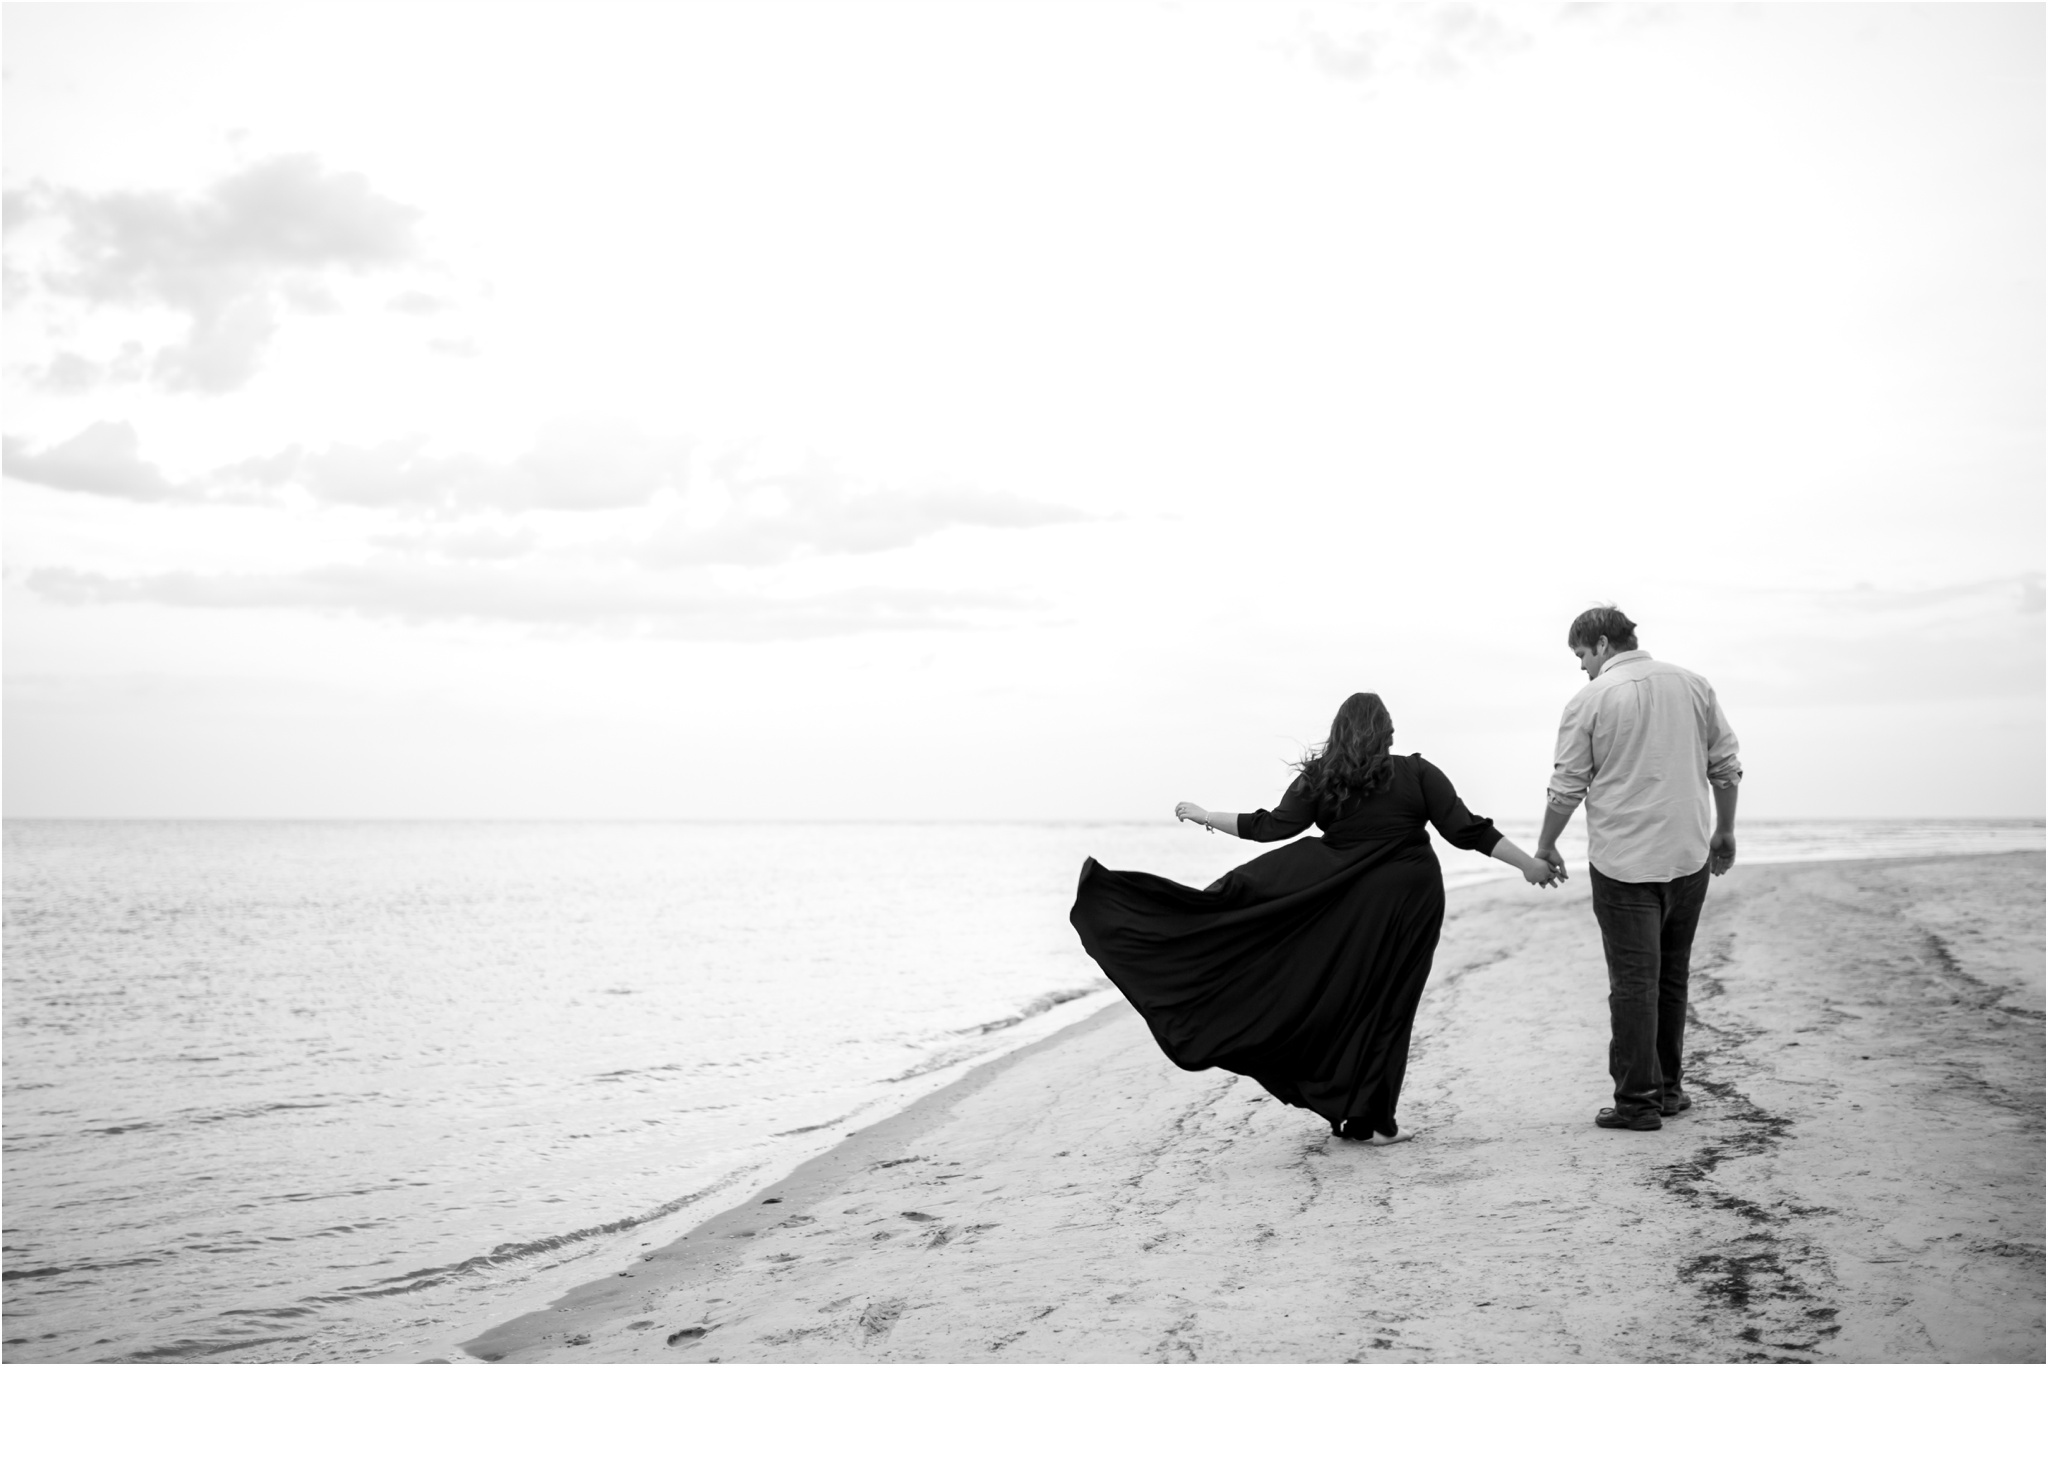 Rainey_Gregg_Photography_St._Simons_Island_Georgia_California_Wedding_Portrait_Photography_1401.jpg